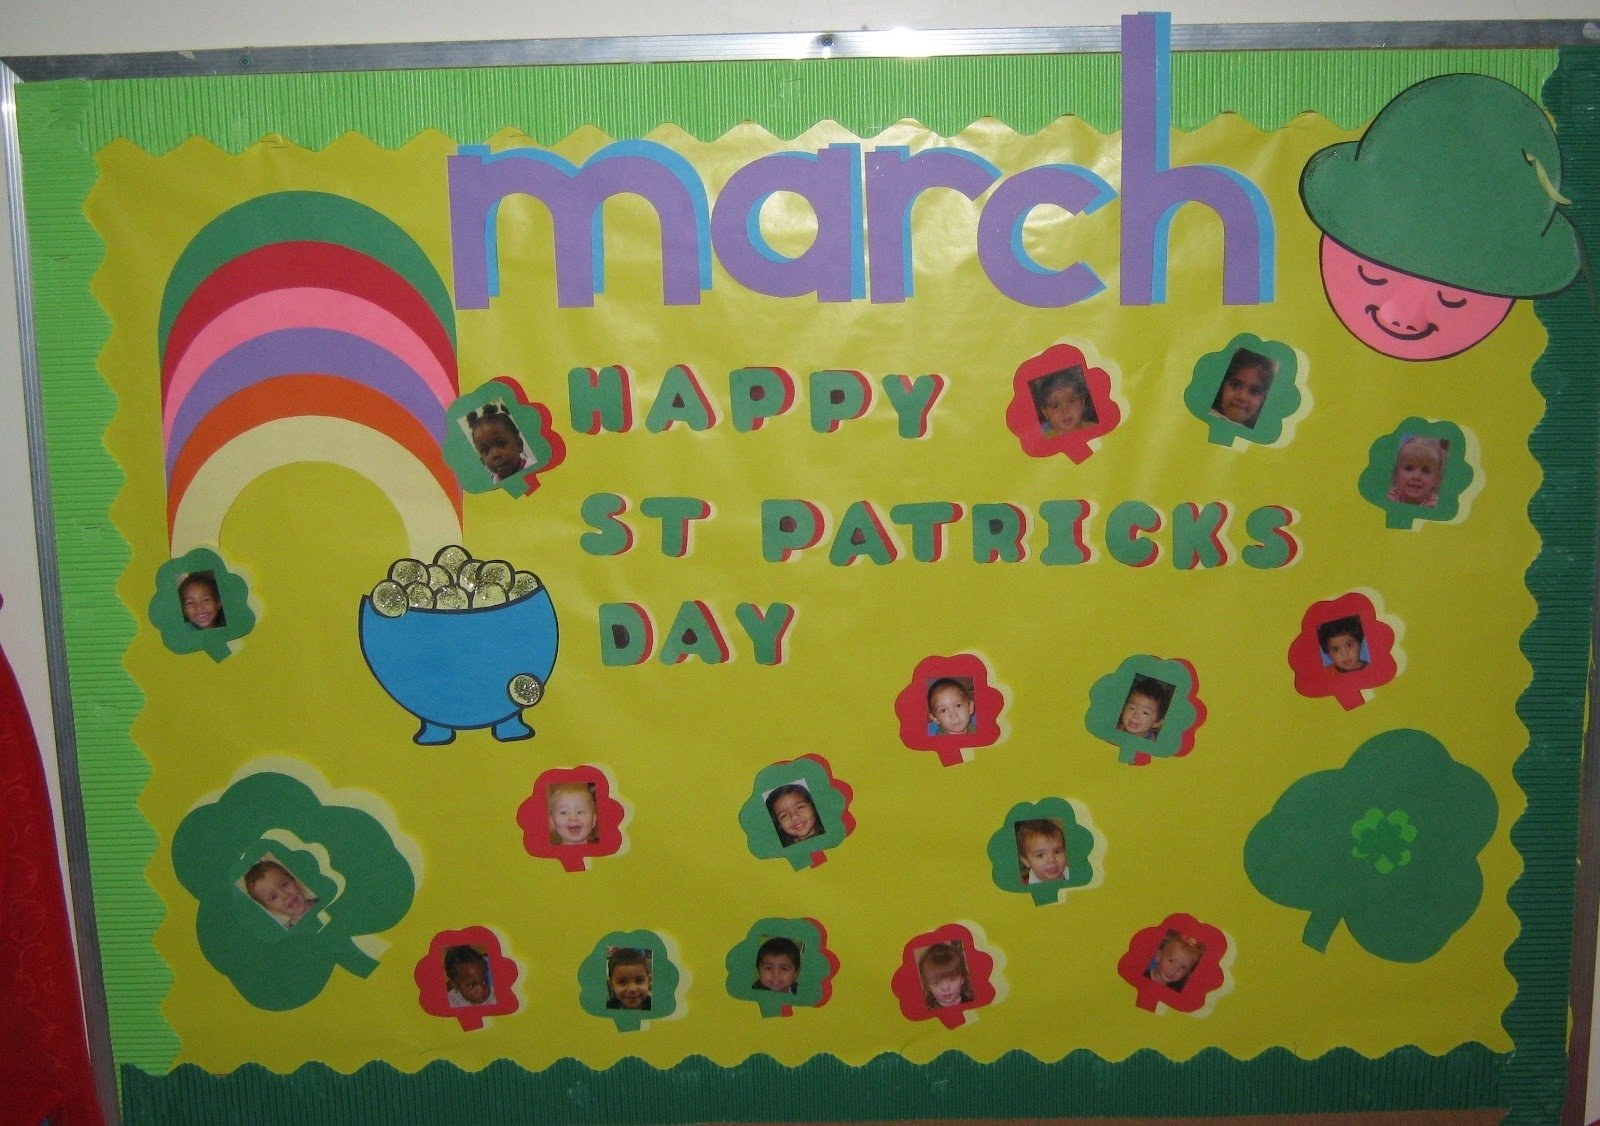 10 Most Recommended Bulletin Board Ideas For March kreative resources bulletin boards 1 2021